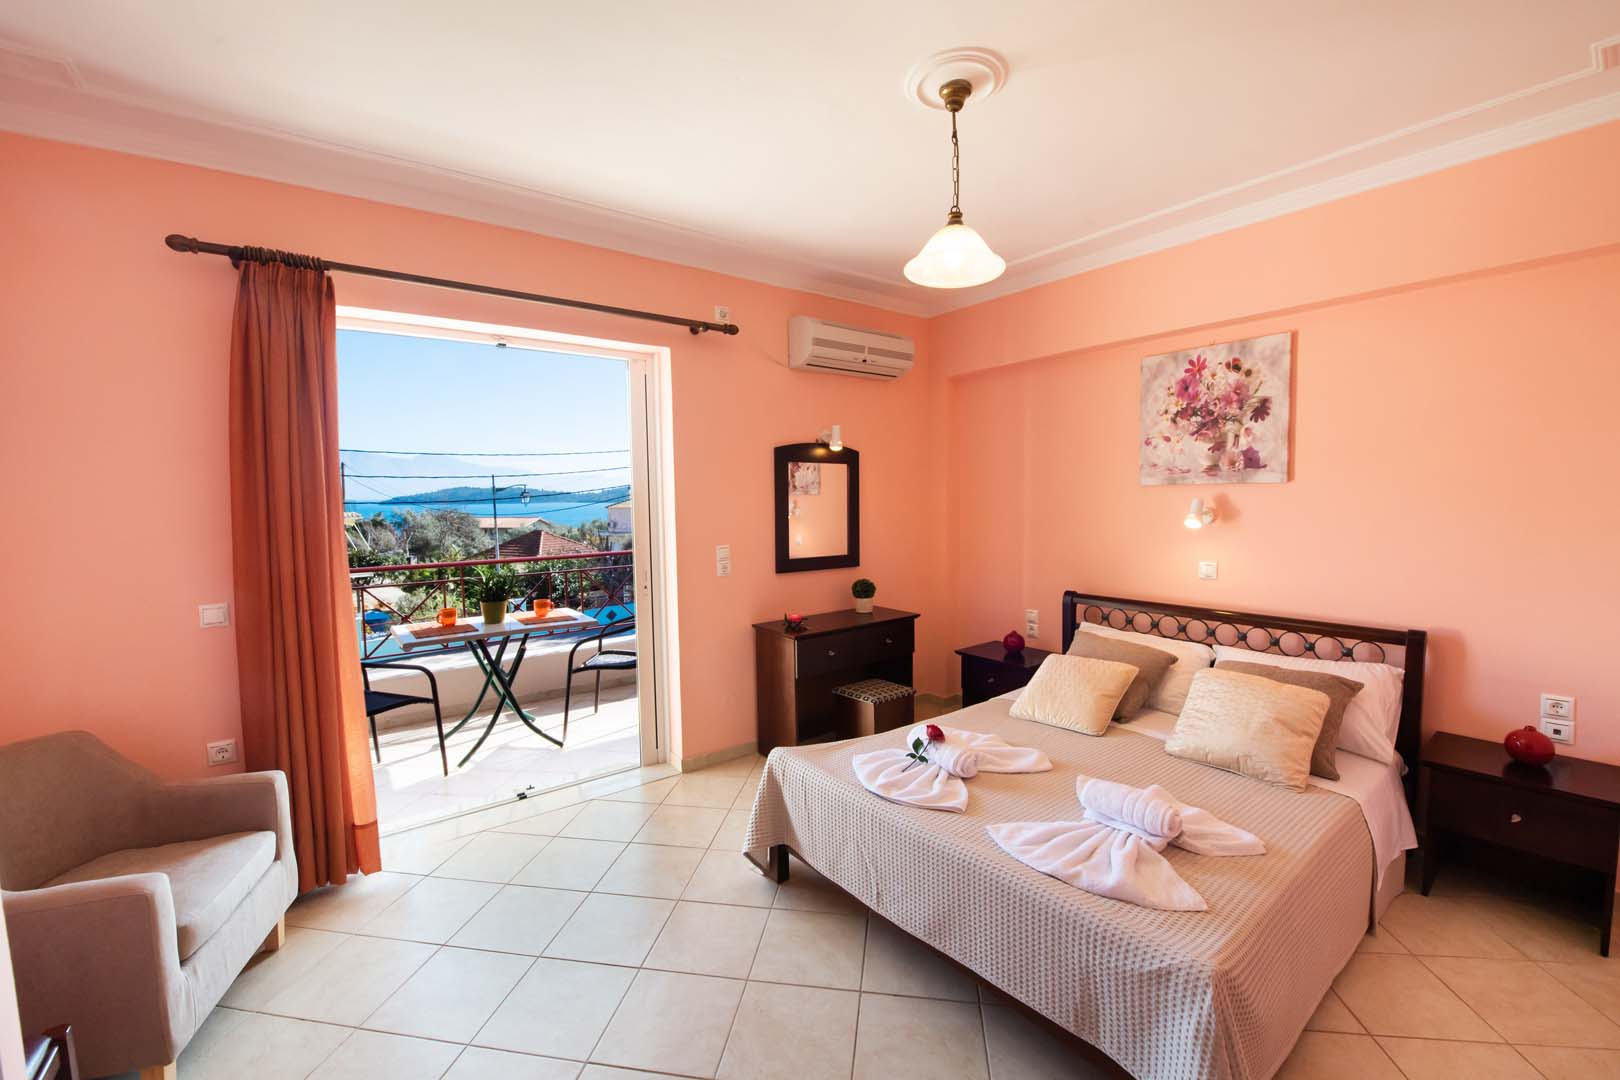 Sunrise Studios Lefkada Apartment